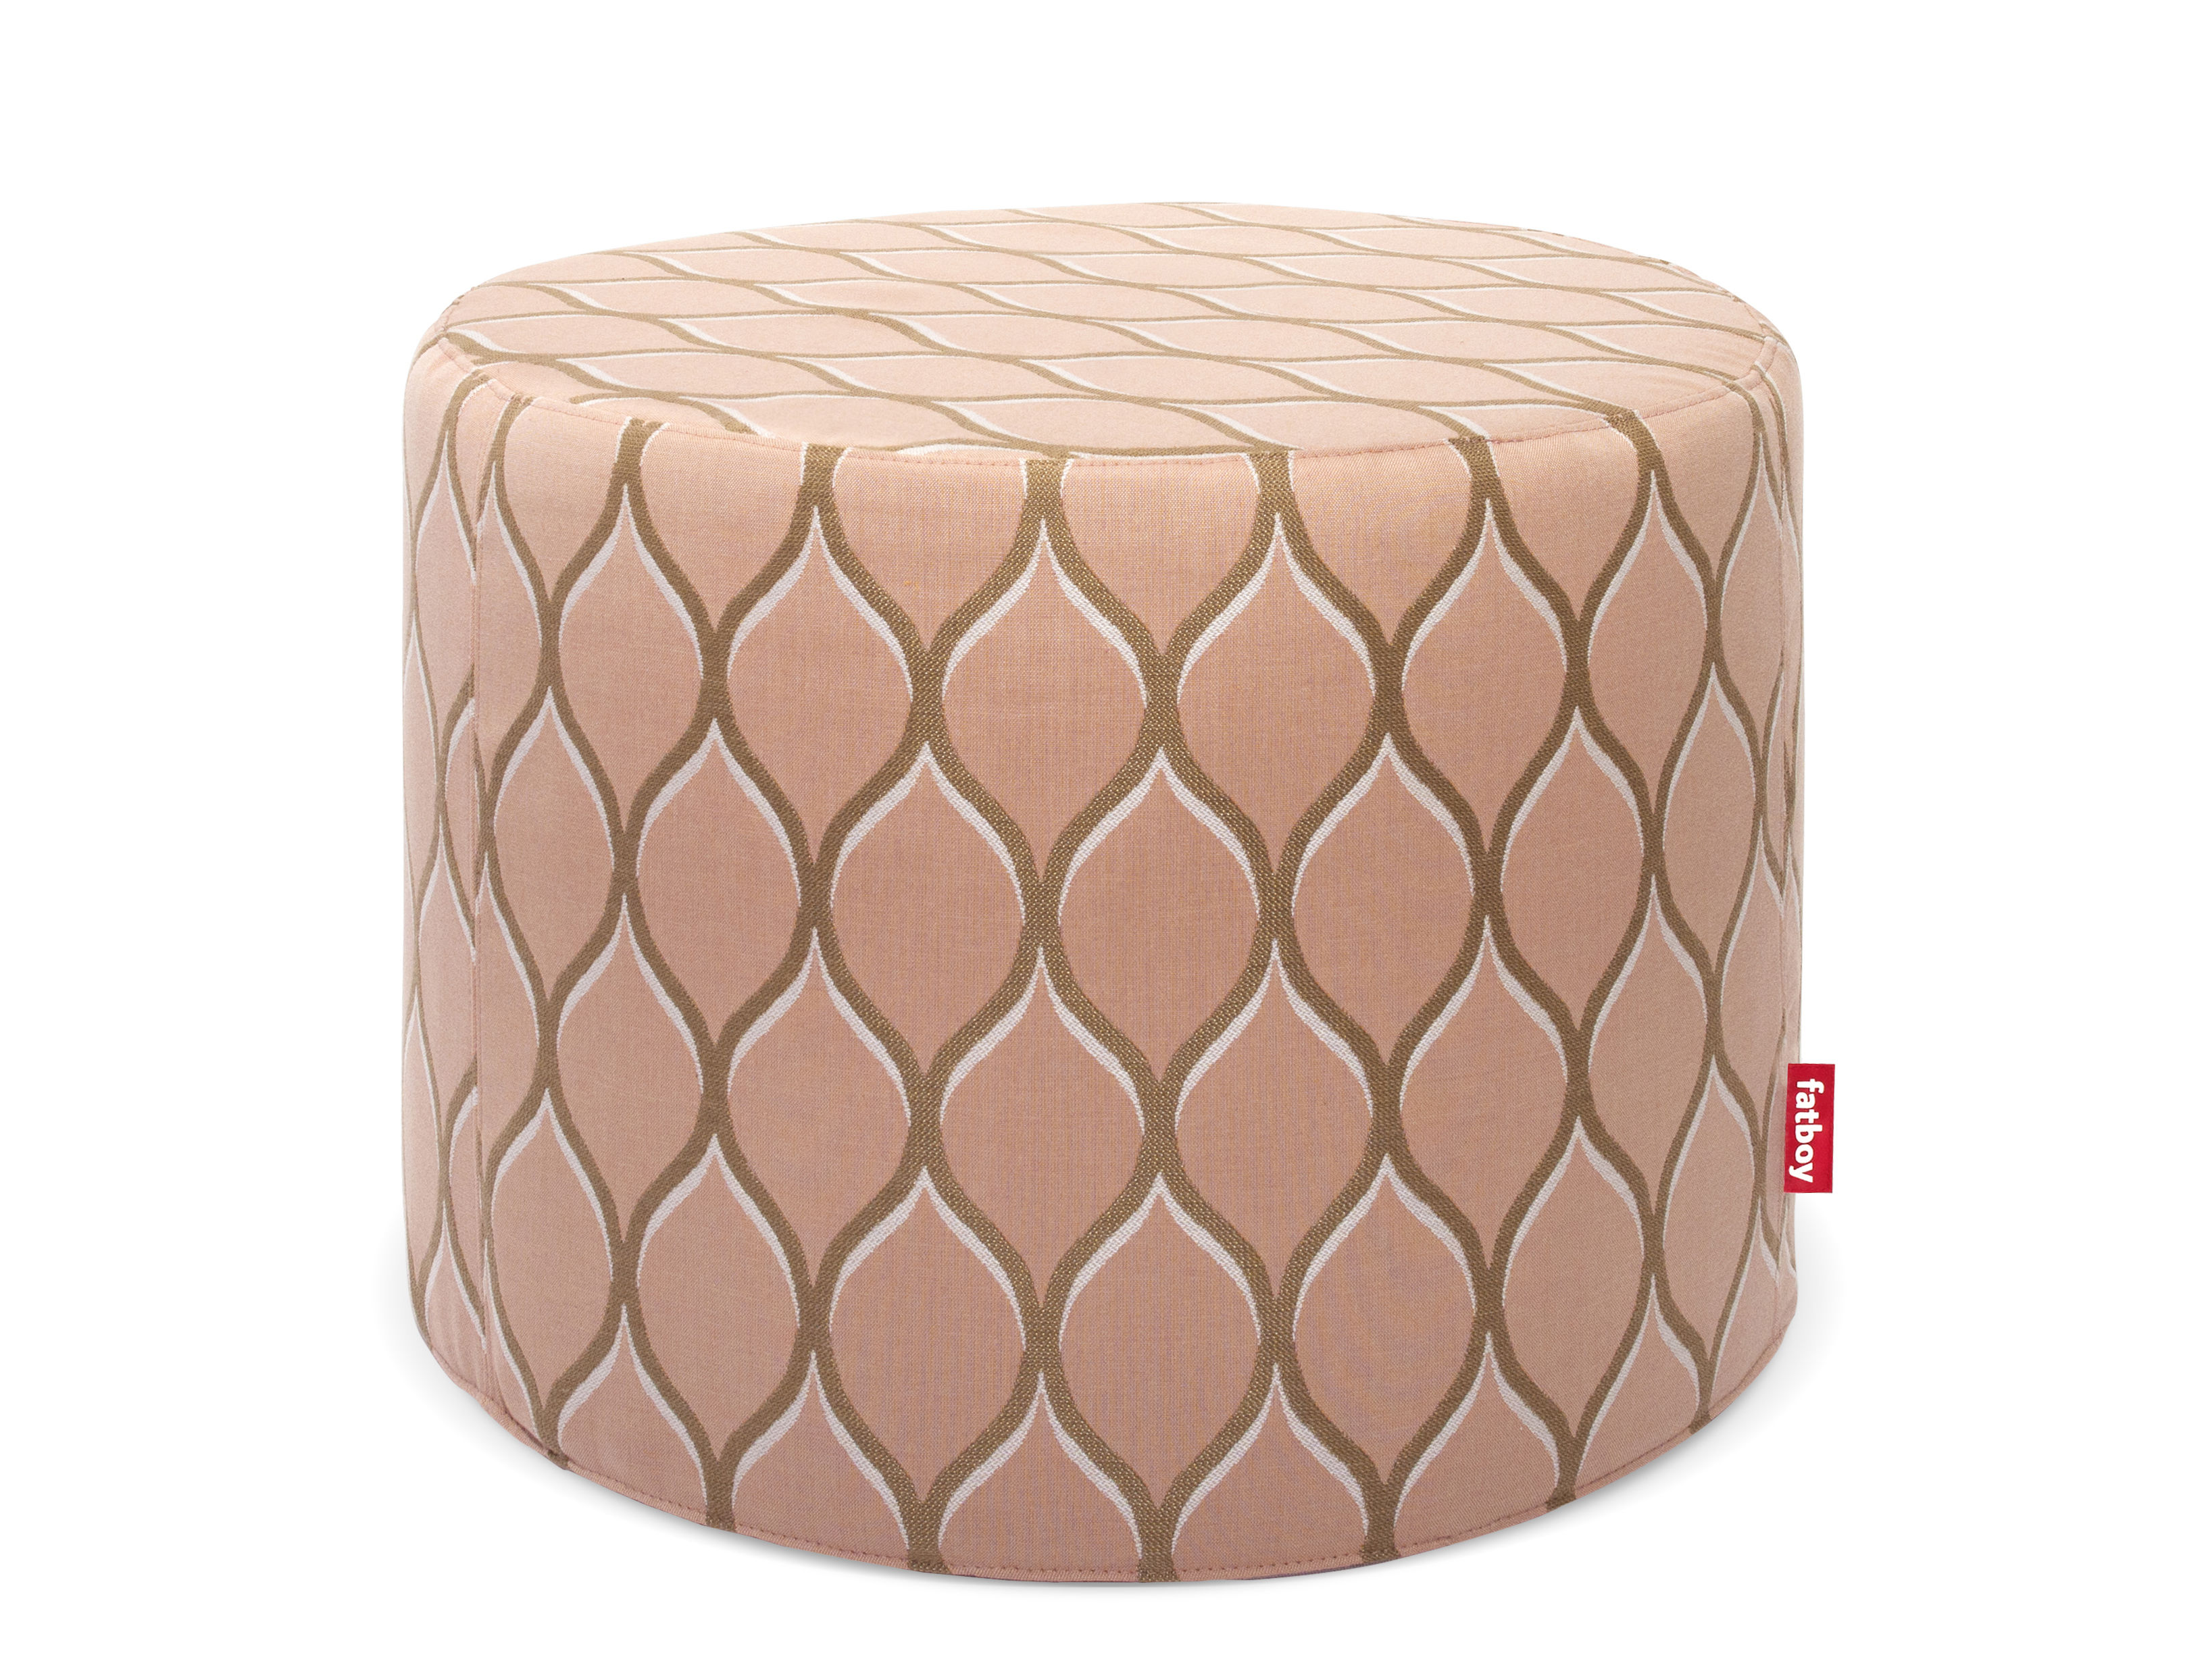 Furniture - Poufs & Floor Cushions - Rondeju Pouf - / For outdoors - Ø 61 by Fatboy - Candy pink / Pink - Foam, Polymer, Sunbrella fabric, Thermoplastic